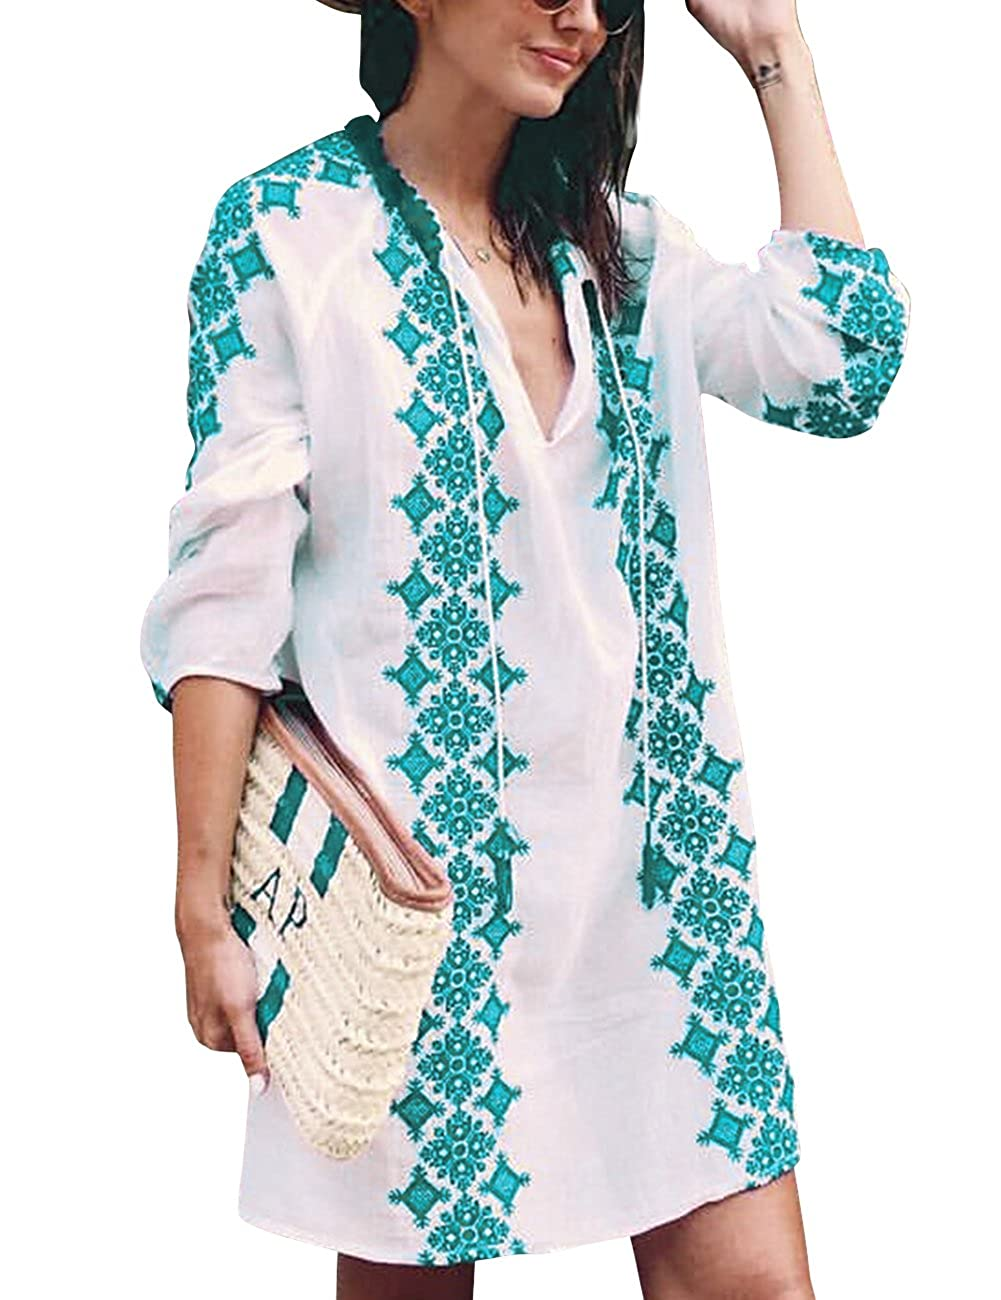 0eb149be682 Sanifer Women s Long Sleeve Beach Cover Up Dress Embroidered Bohemian  Beachwear Bathing Suits Cover Ups (US S-M)